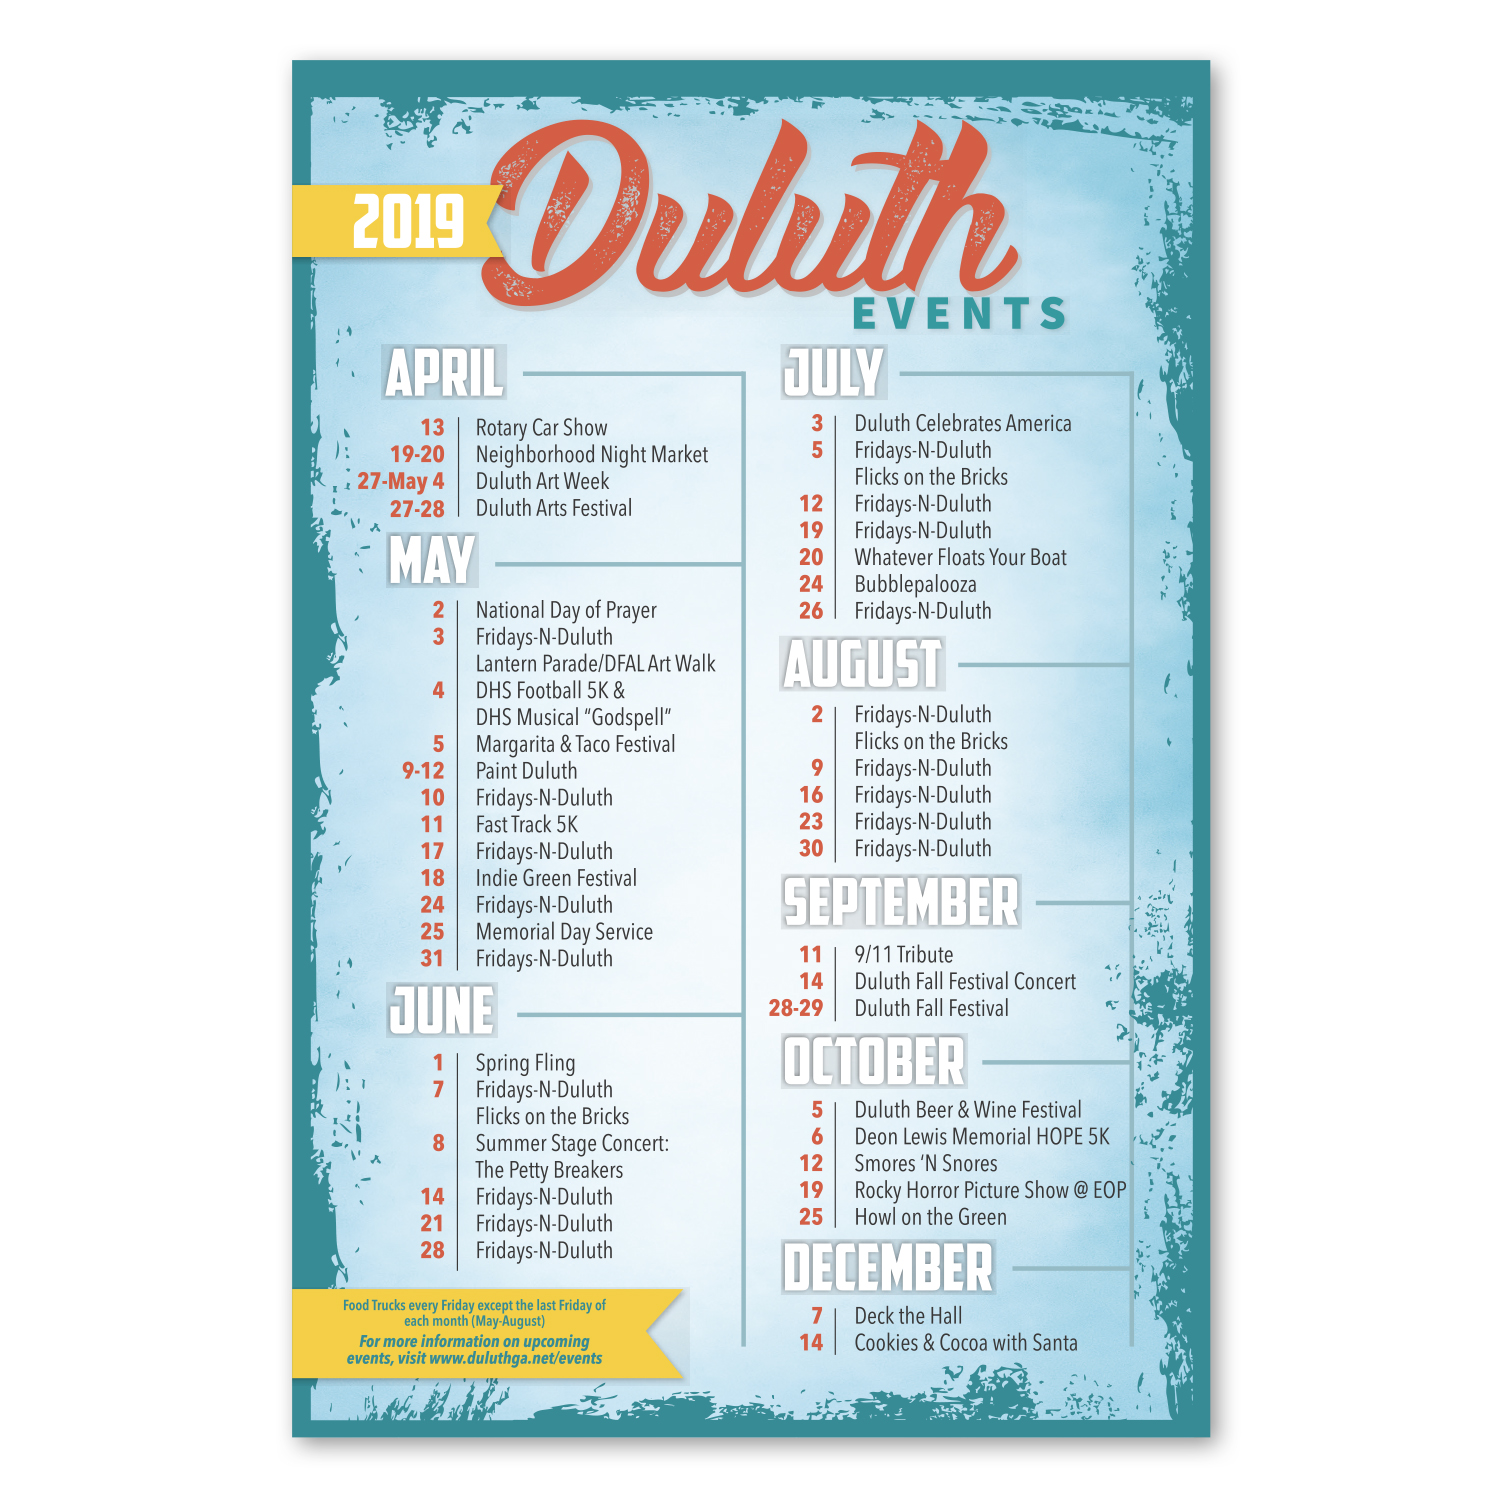 """• CFLRGS Custom Large Square Corners Magnet, 6"""" x 9"""", .020 thickness  • 11,000 piece order for Duluth, GA showing their 2019 events schedule."""